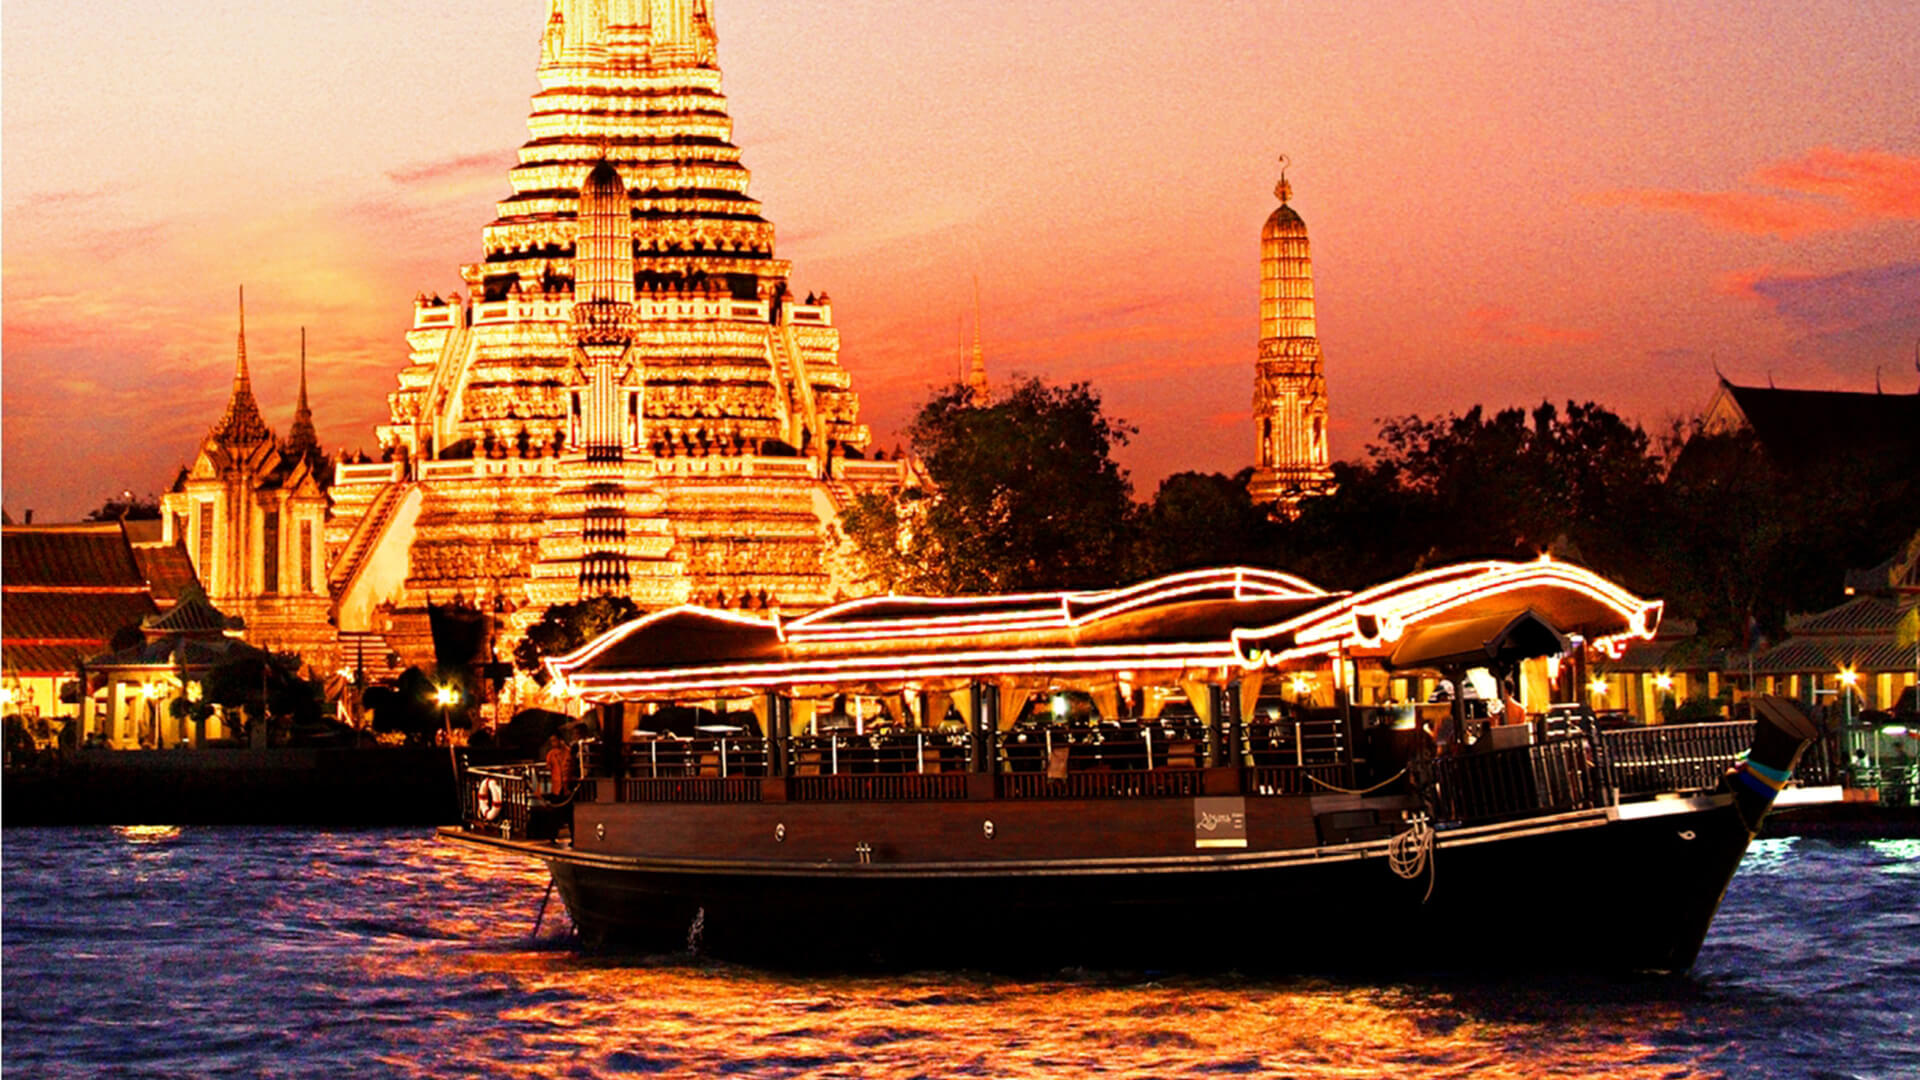 ASPARA (RIVER CRUISE DINNING ON CHAO PHRAYA RIVER)